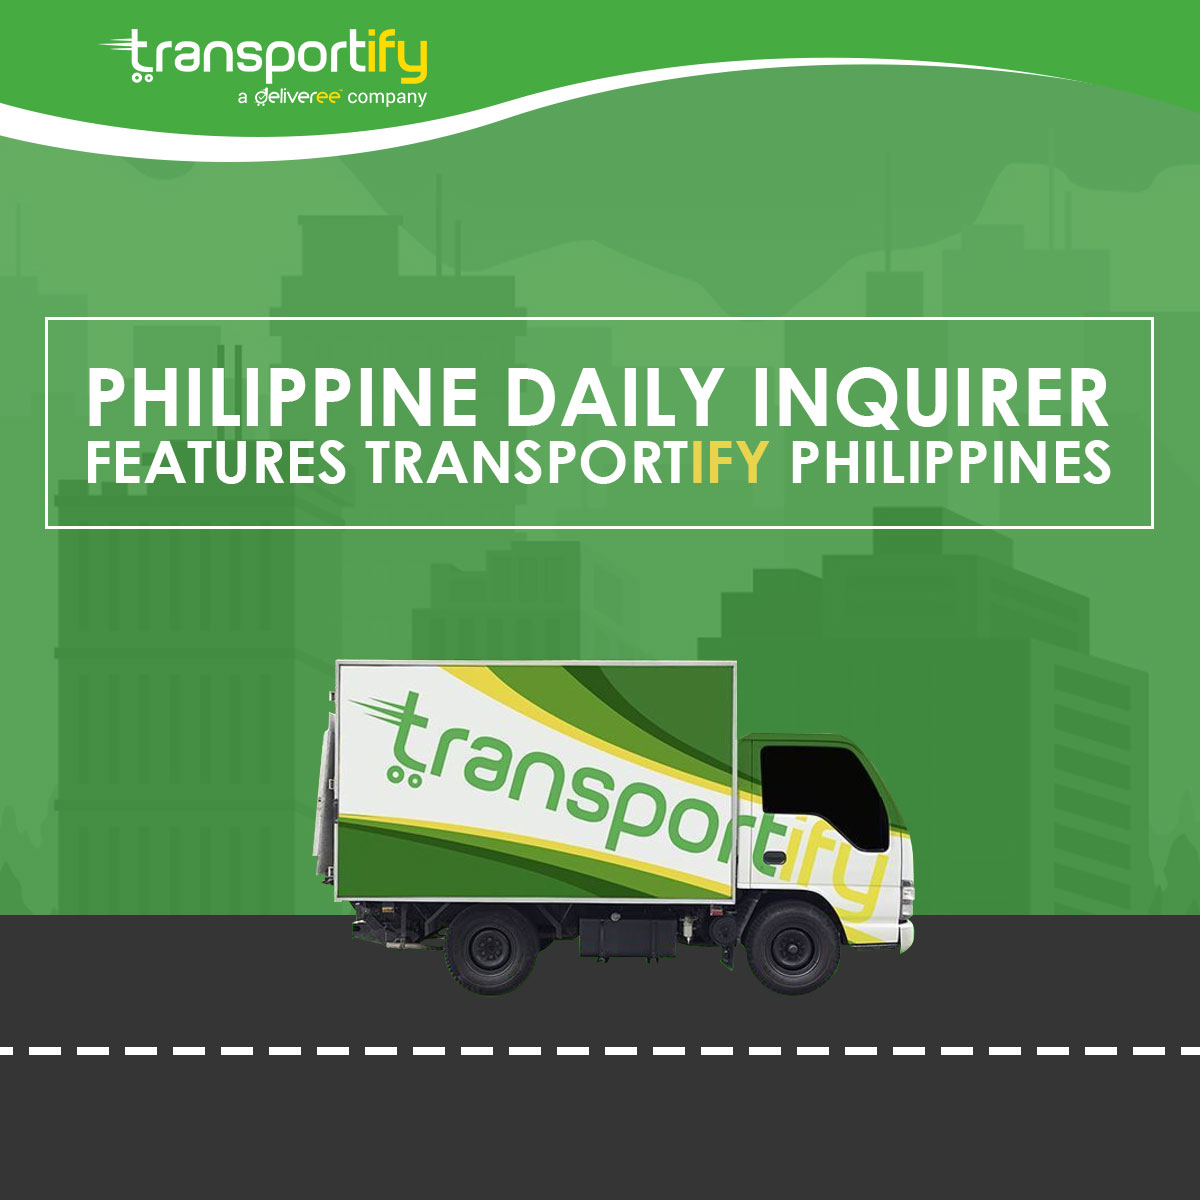 transportify philippines, on-demand delivery service, 3pl